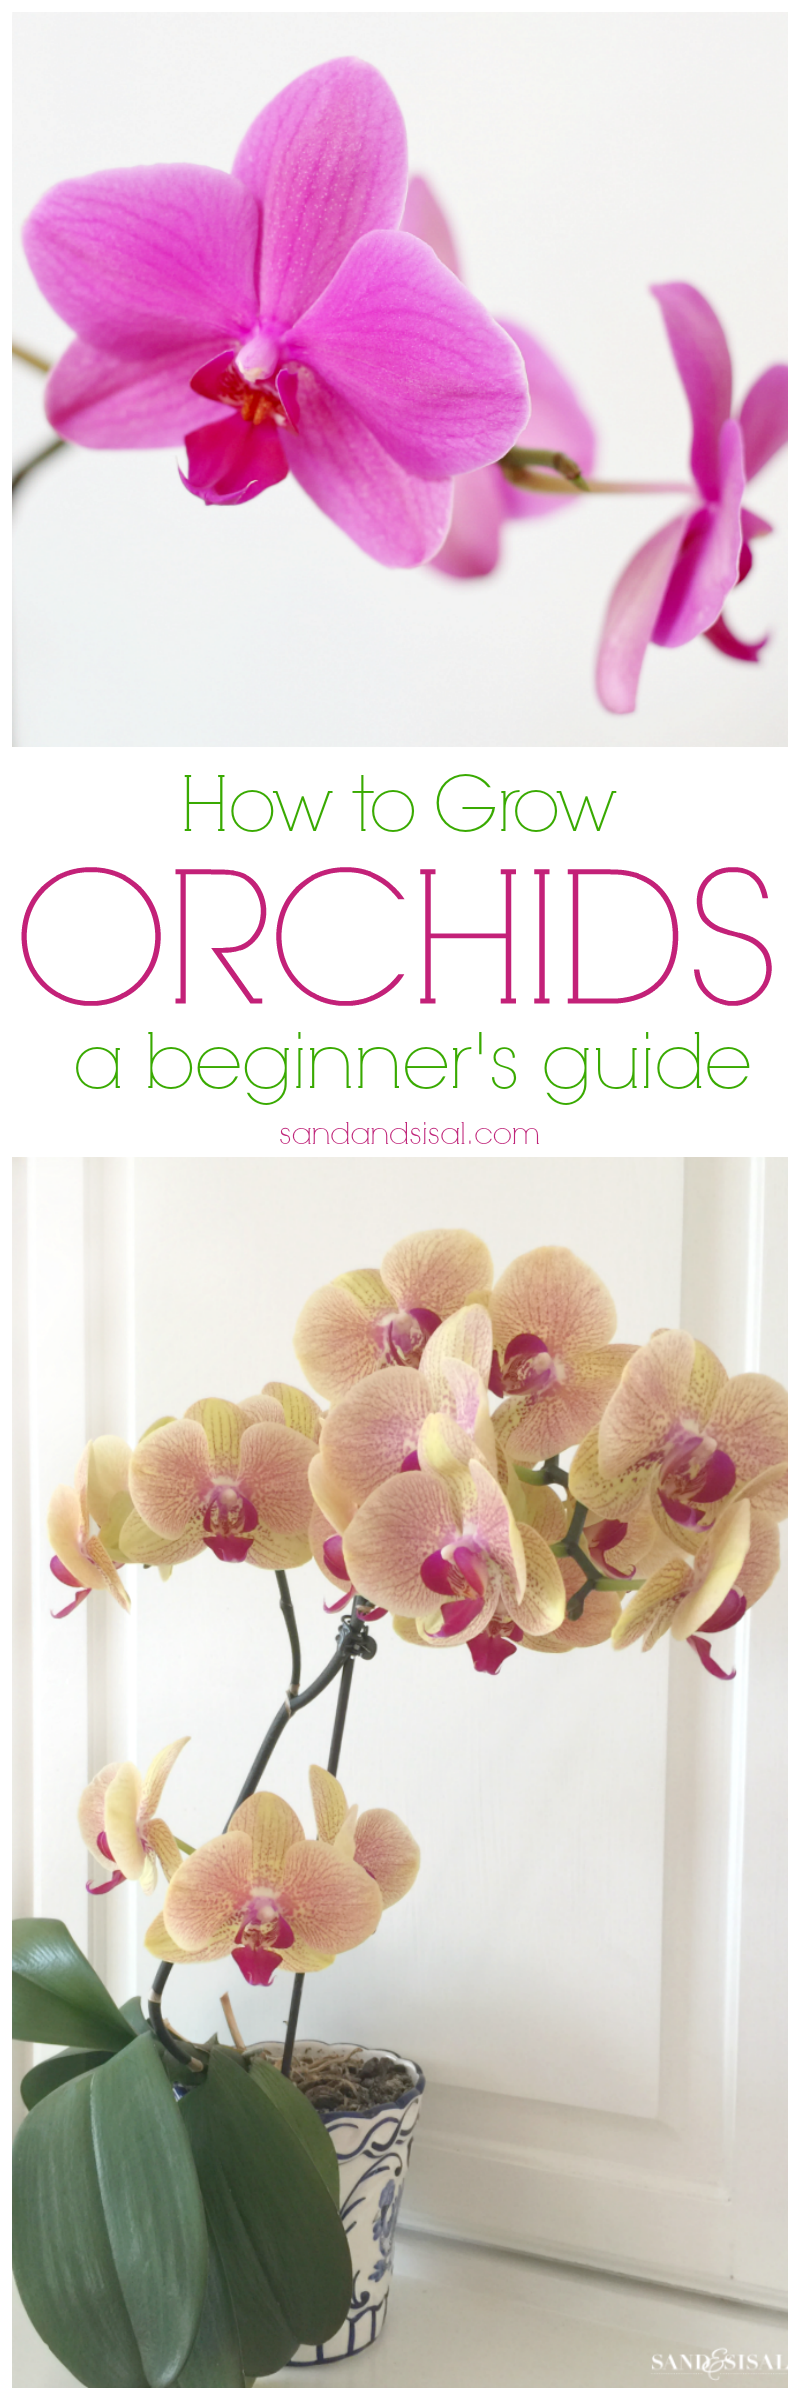 How to Grow Orchids - A beginner's guide